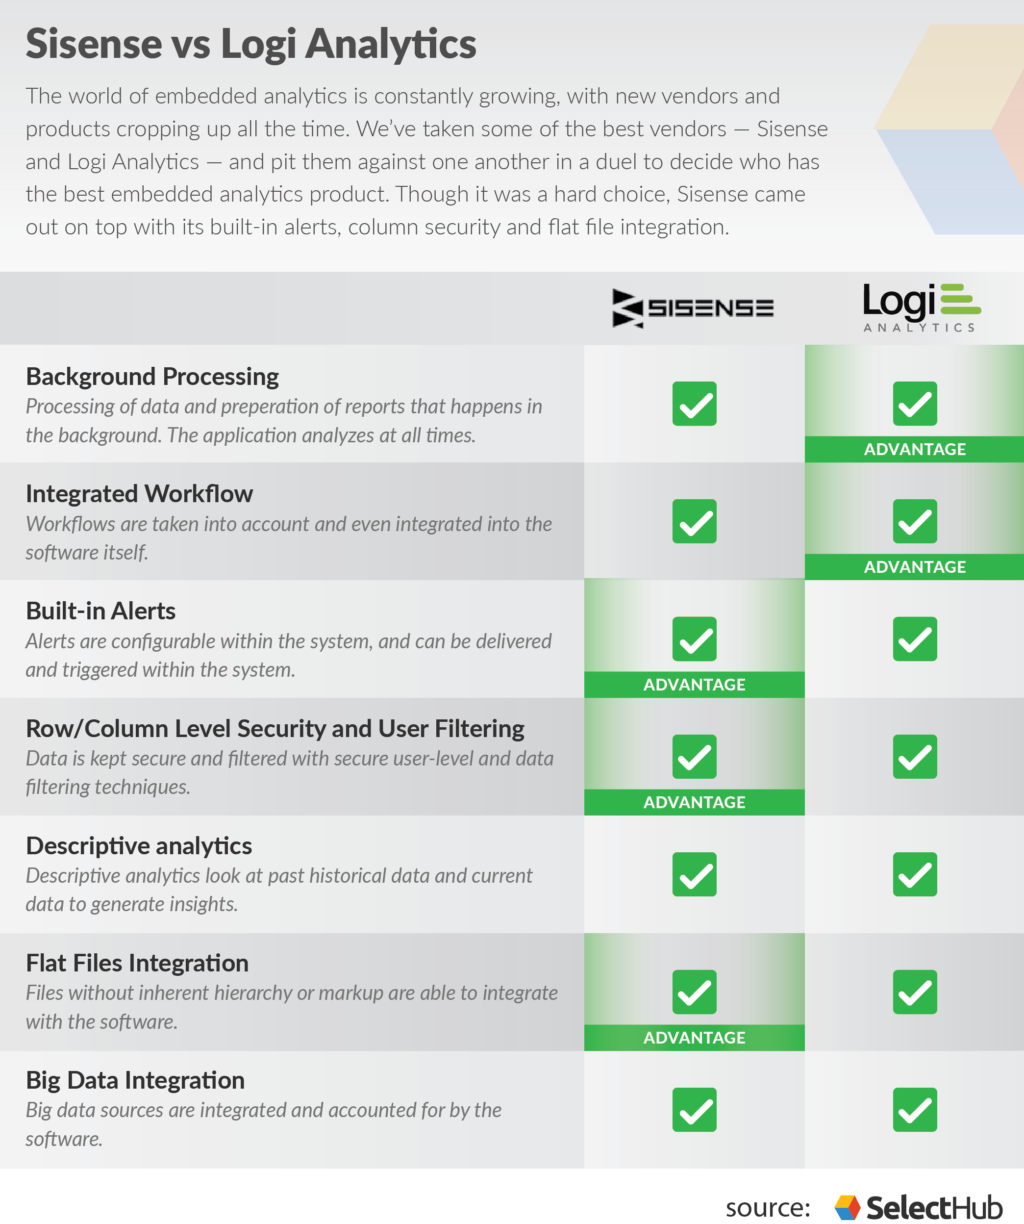 A chart comparing Sisense vs Logi Analytics